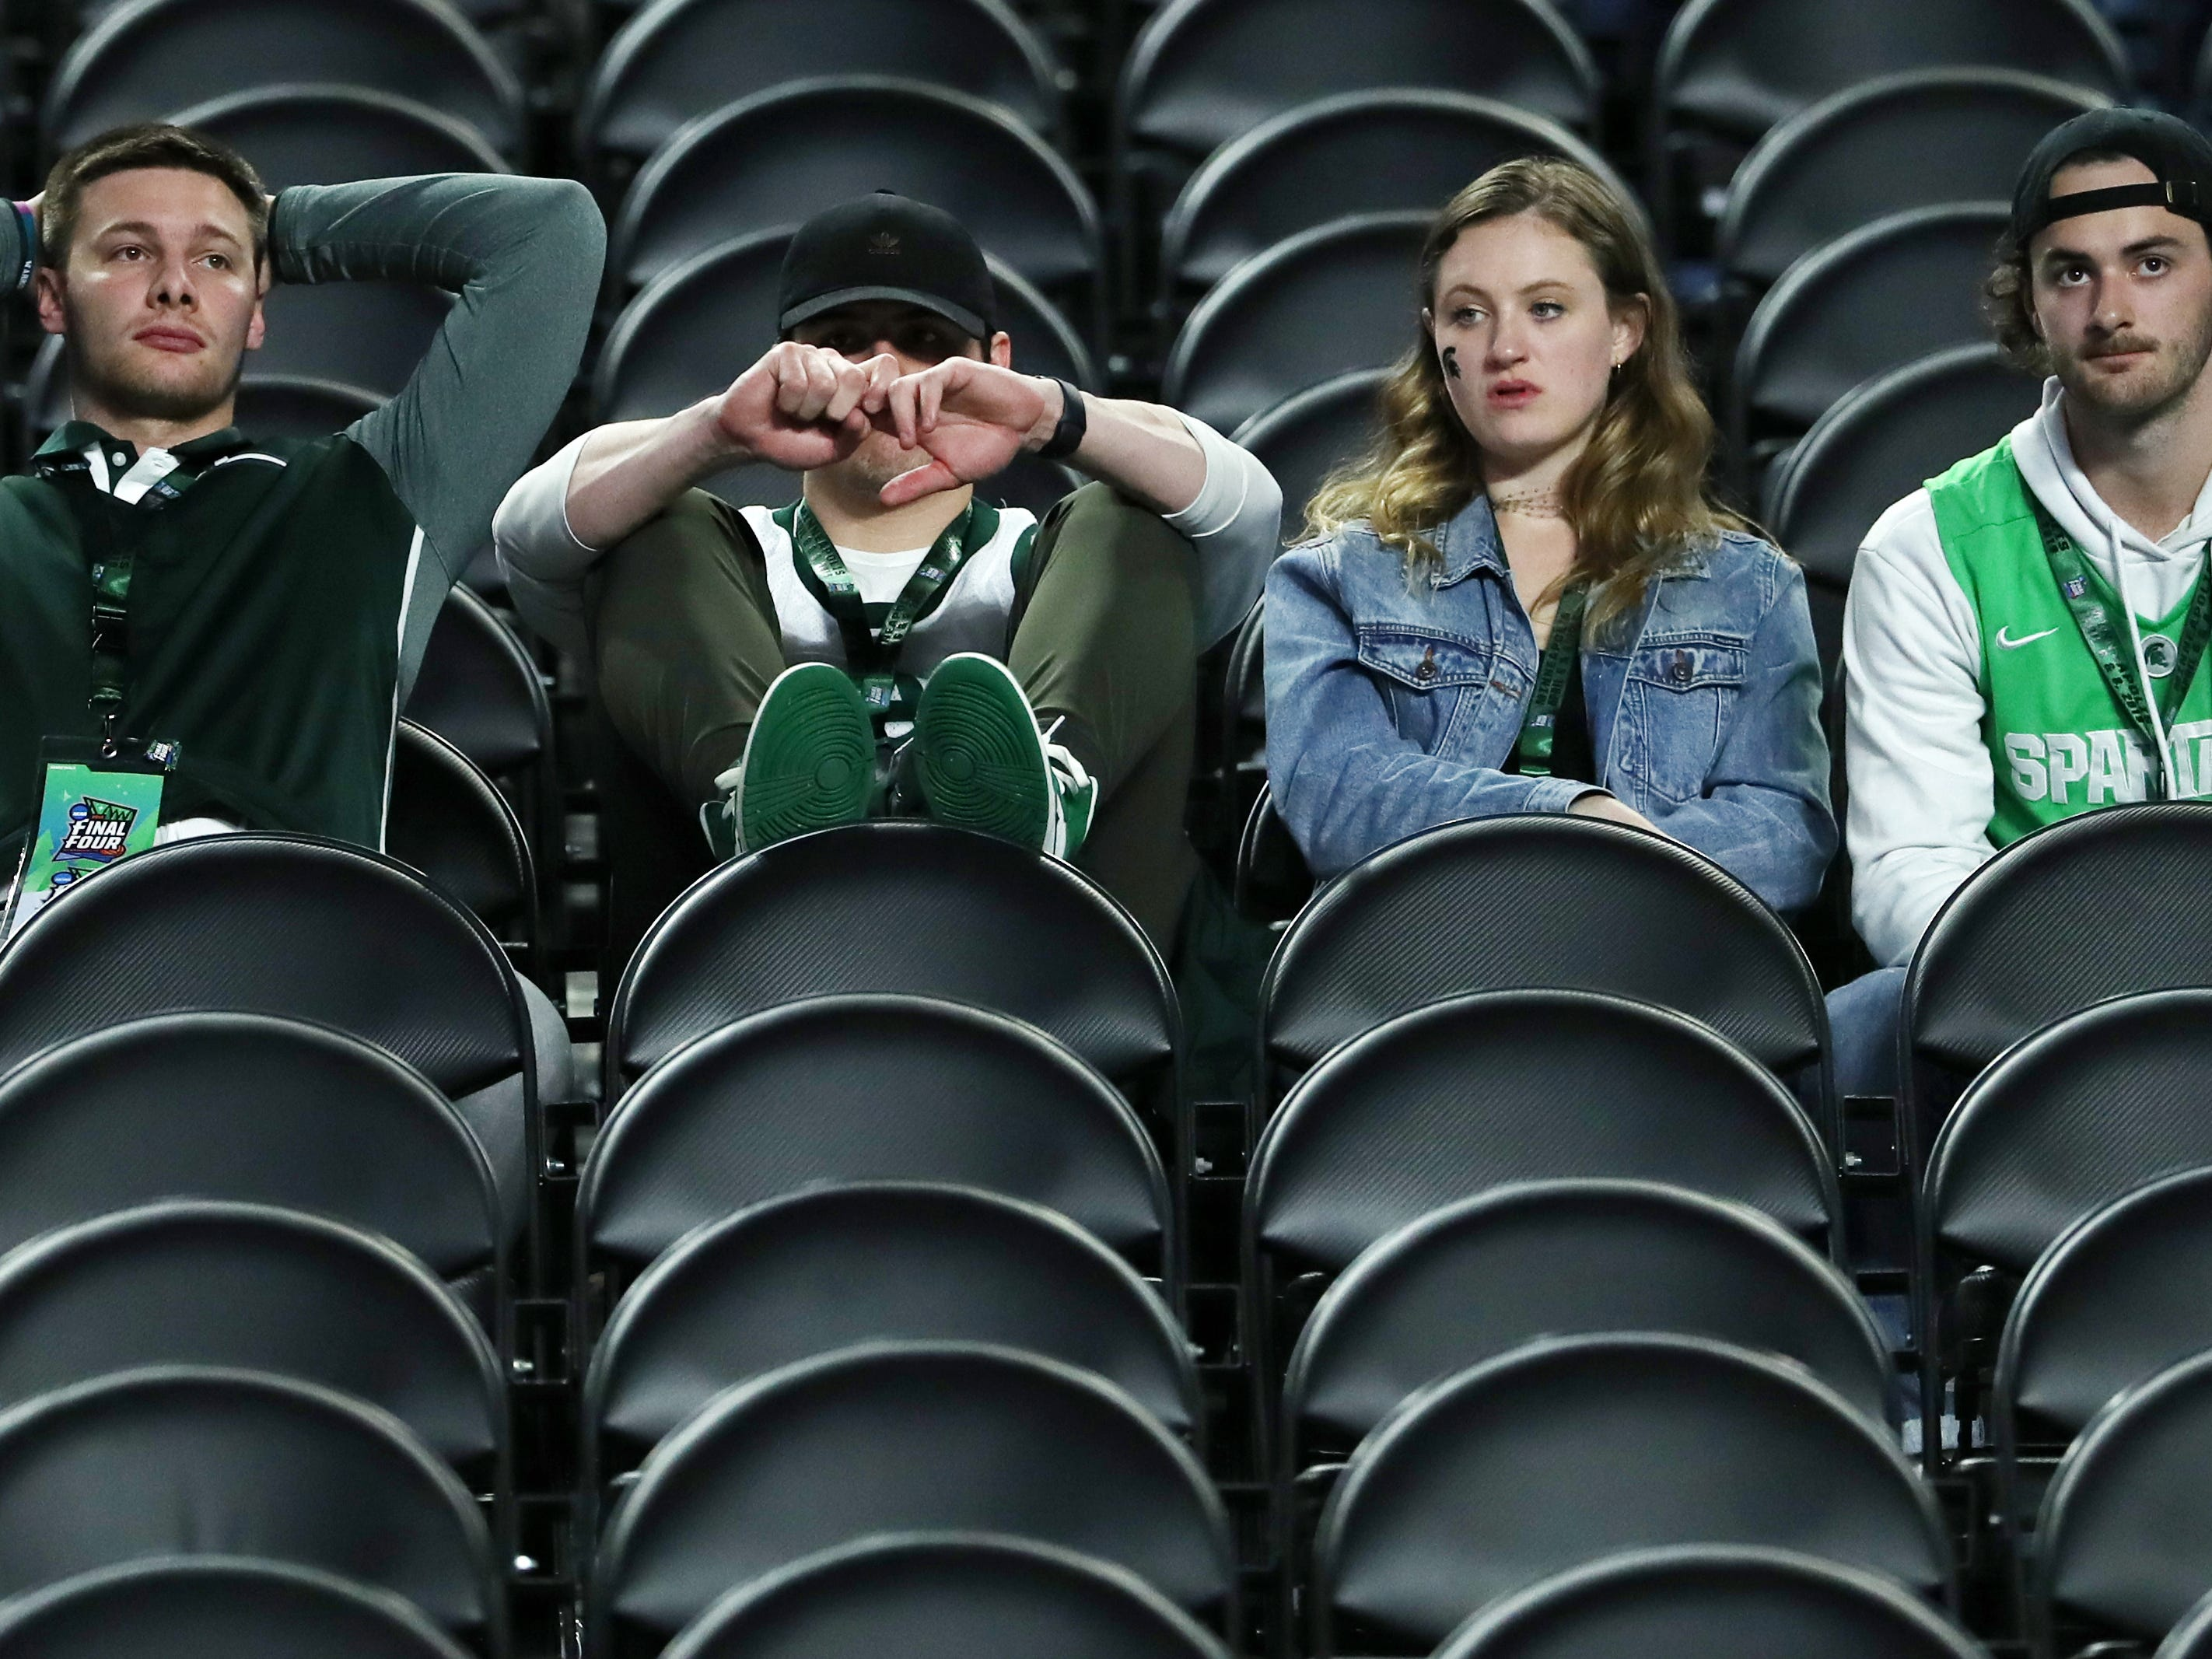 Michigan State fans sit in the stands following the Spartans' loss to Texas Tech, 61-51, in the Final Four at U.S. Bank Stadium in Minneapolis, Minnesota on Saturday, April 6, 2019.